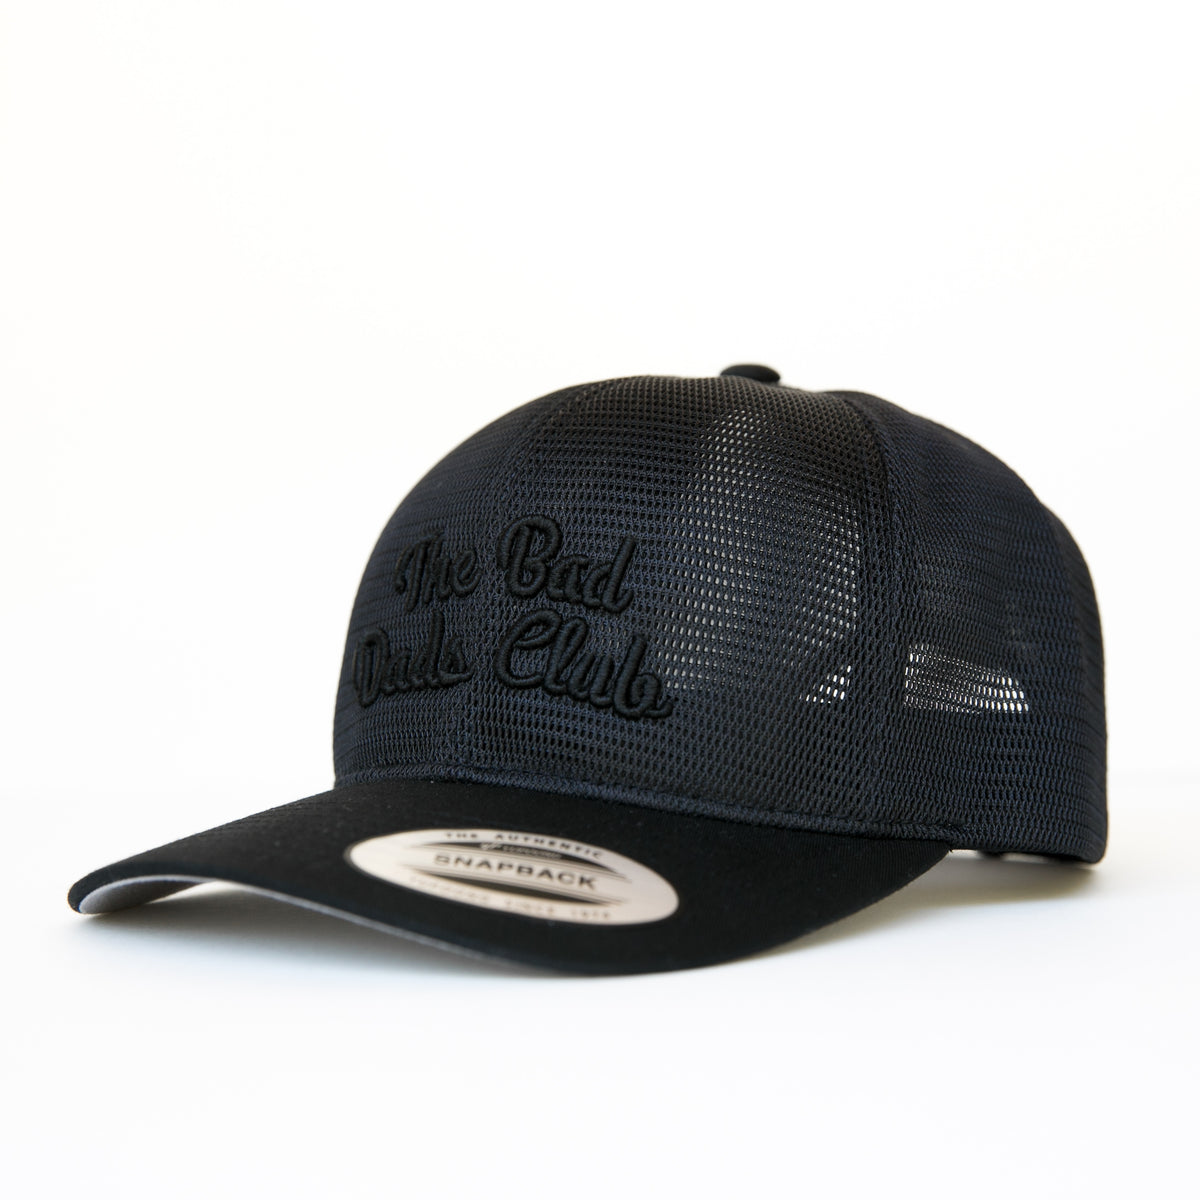 BAD DADS ARCH ALL MESH BLACKOUT SNAPBACK